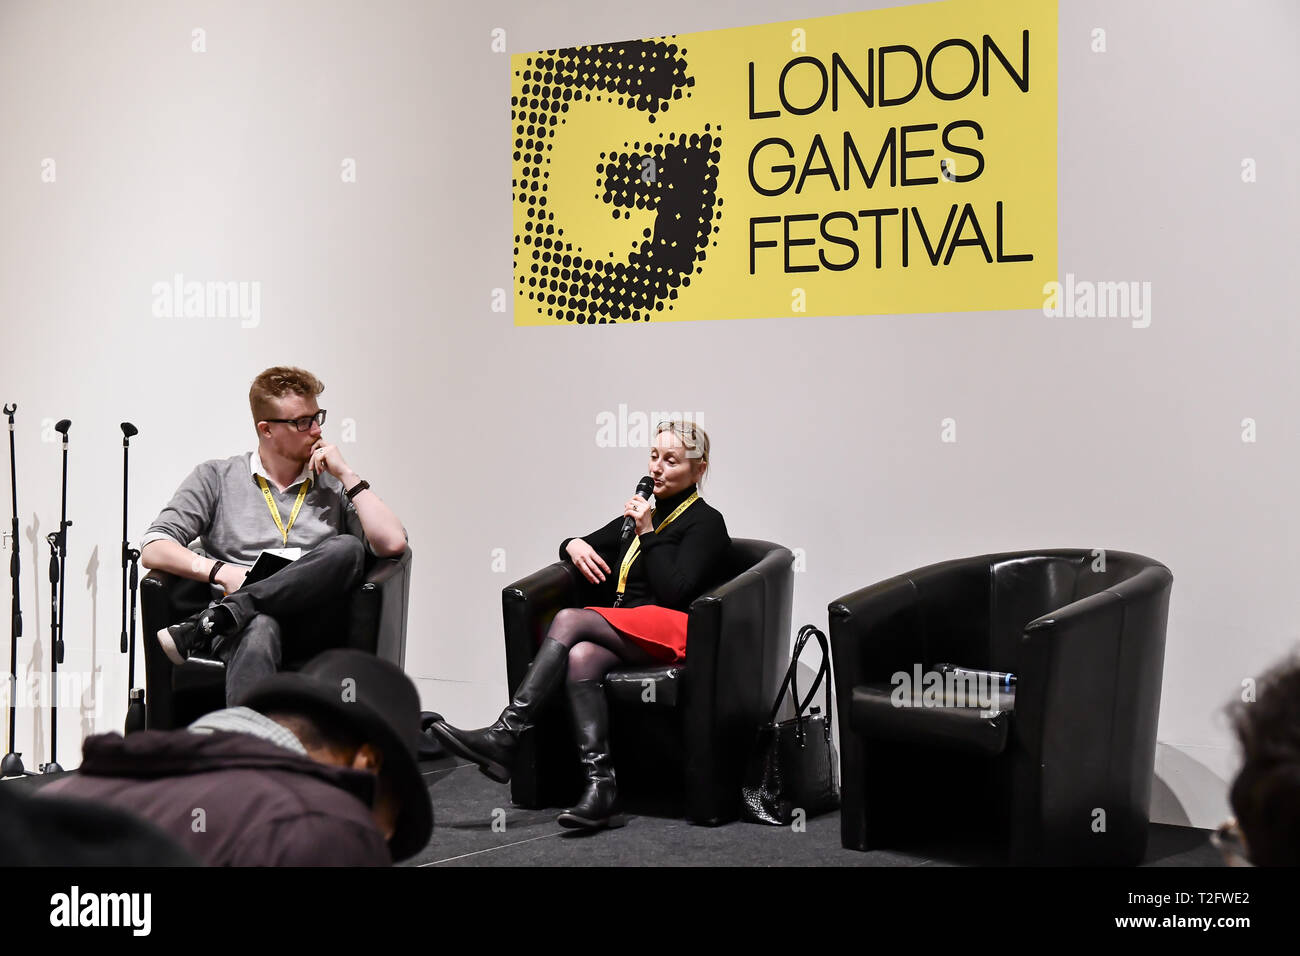 London, Großbritannien. 02 Apr, 2019. Lautsprecher Noirin Carmody, Revolution in London Games Festival 2019: HUB im Somerset House in Strand, London, UK. Am 2. April 2019. Bild Capital/Alamy leben Nachrichten Stockbild